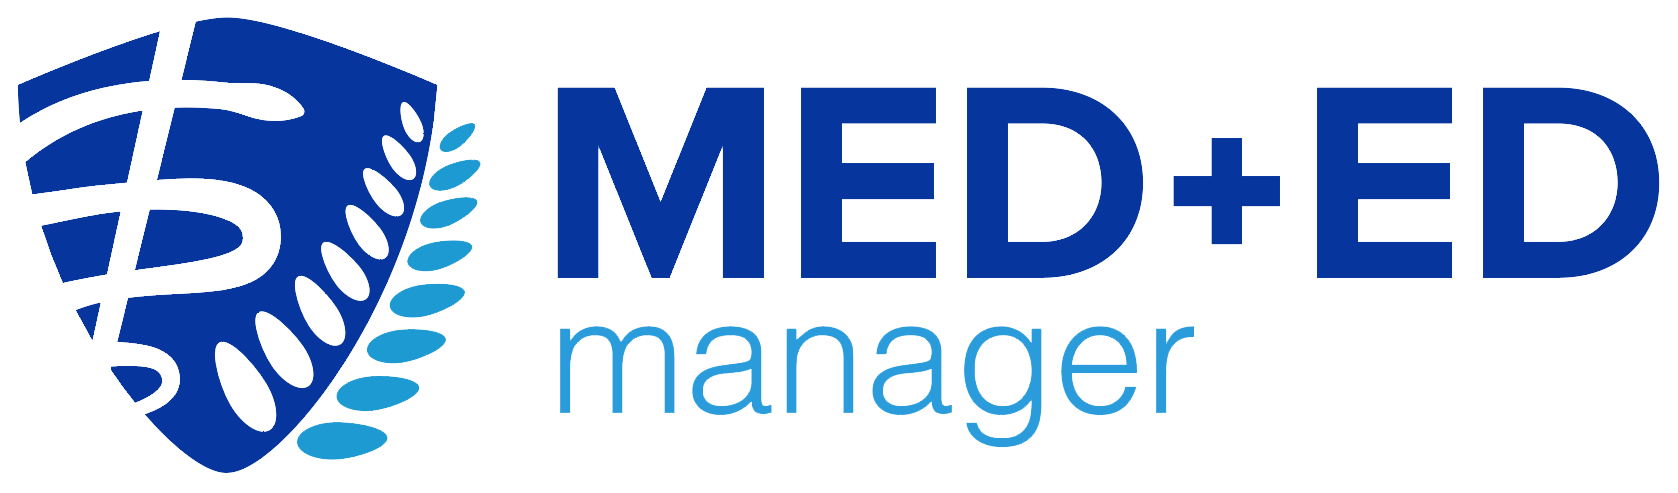 Meded mgr logo